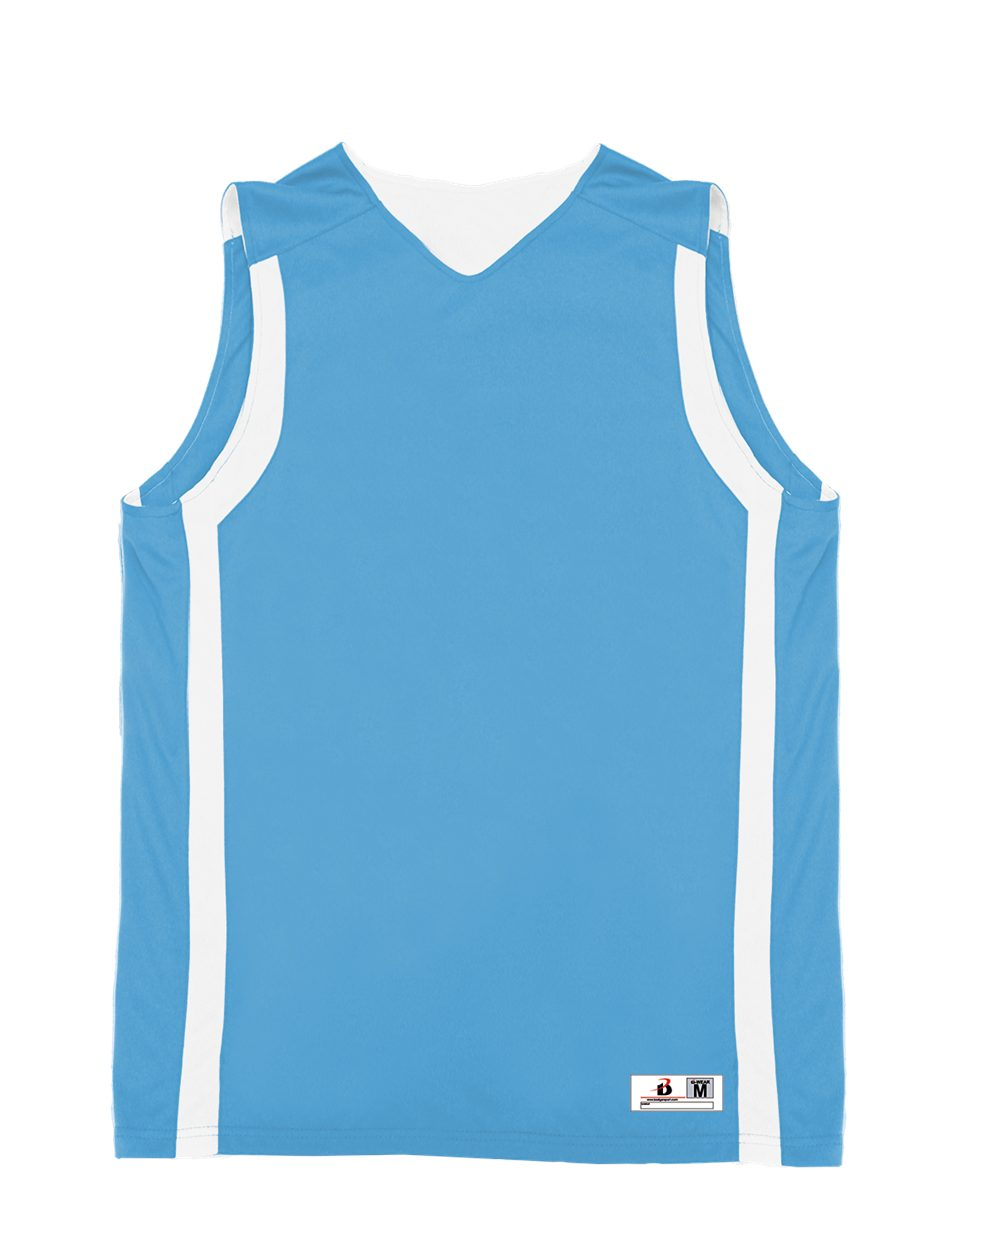 Badger Womens B-Slam Reversible Basketball Jersey 8951